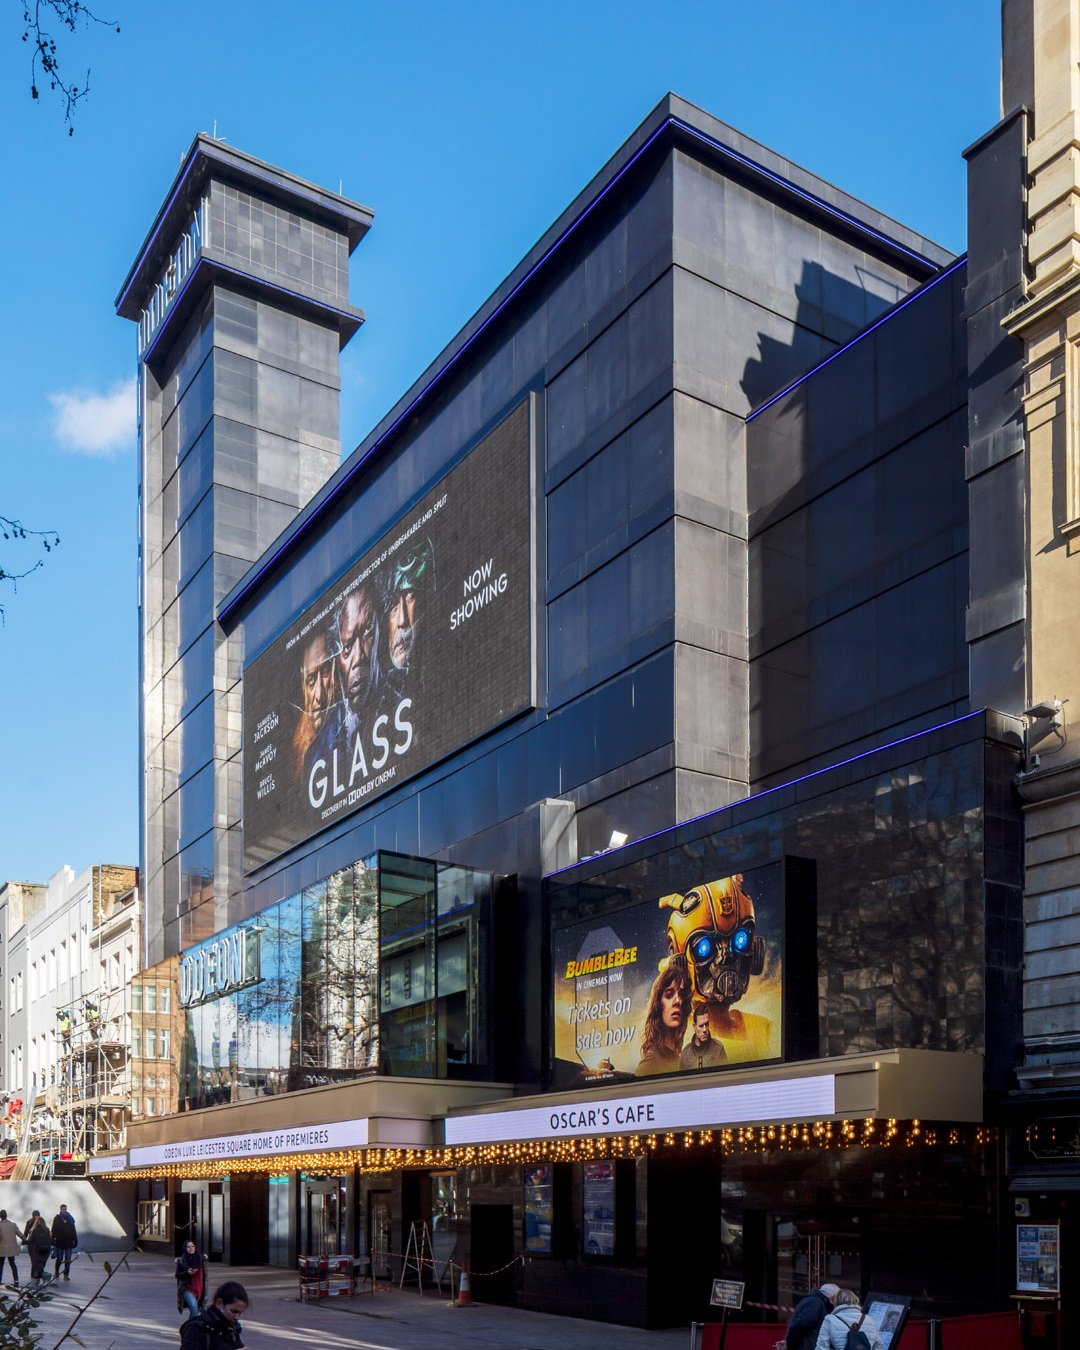 odeon cinema - Leicester square,